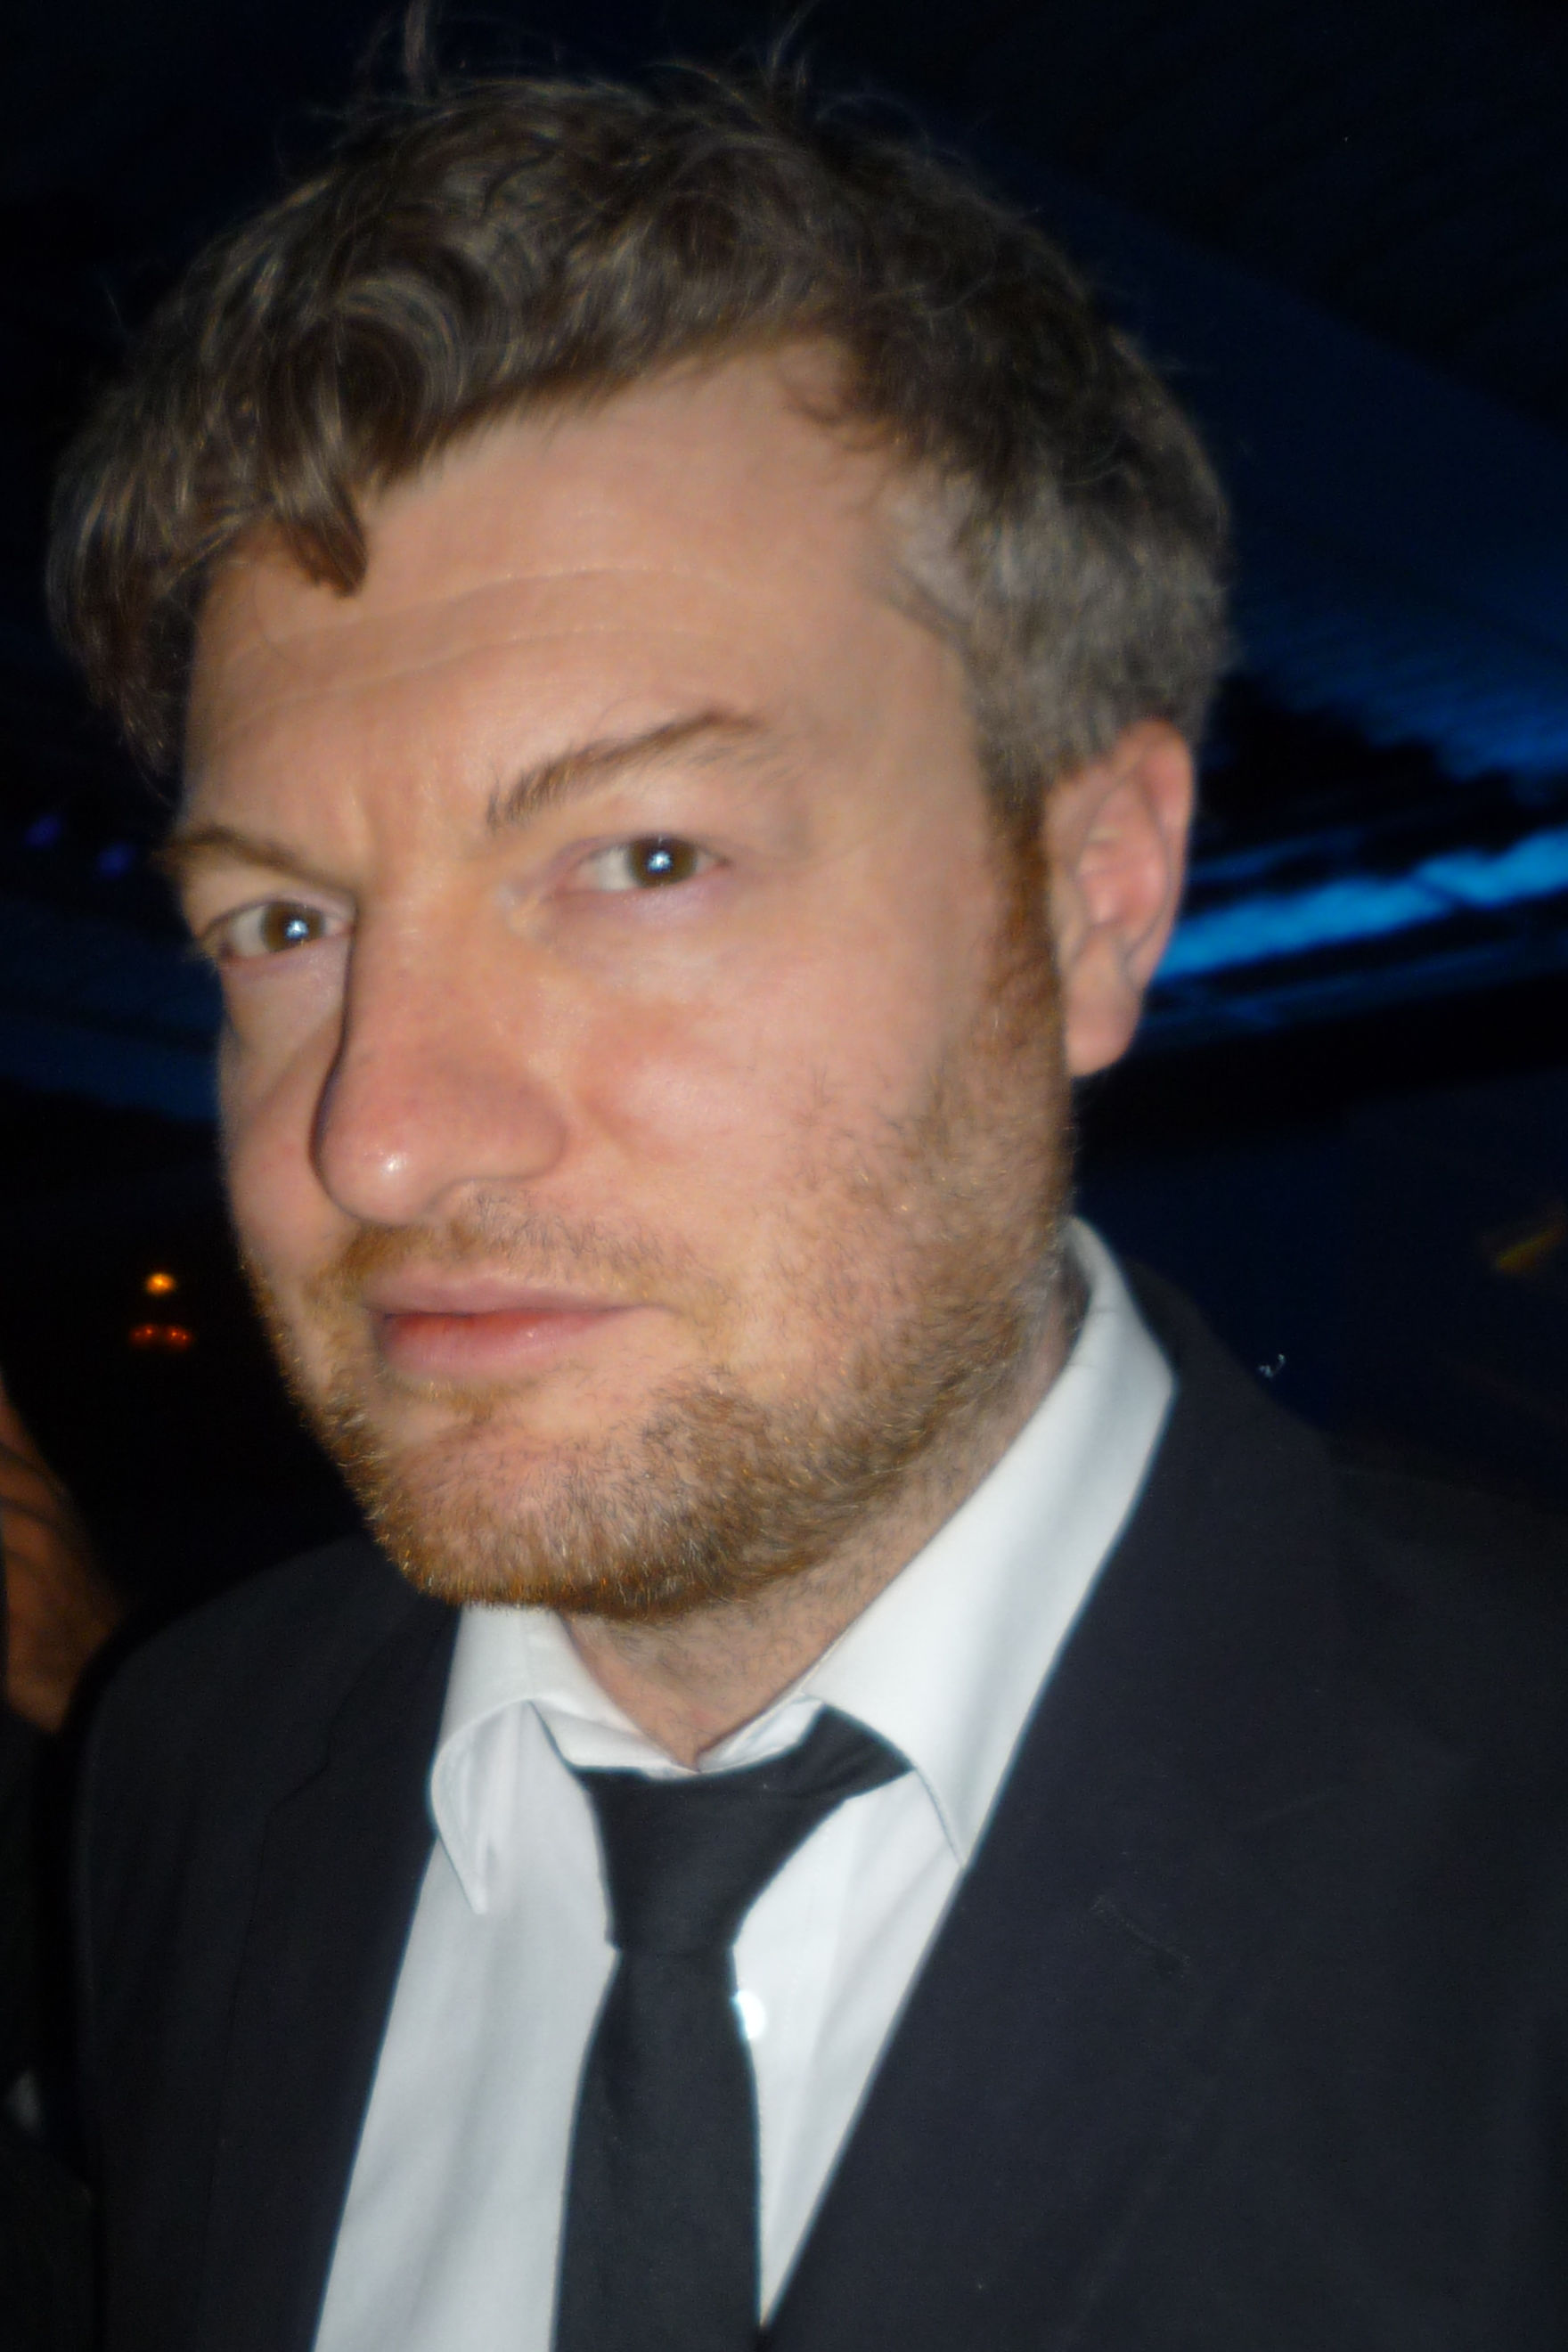 Photo of Charlie Brooker: Journalist, broadcaster and writer from England